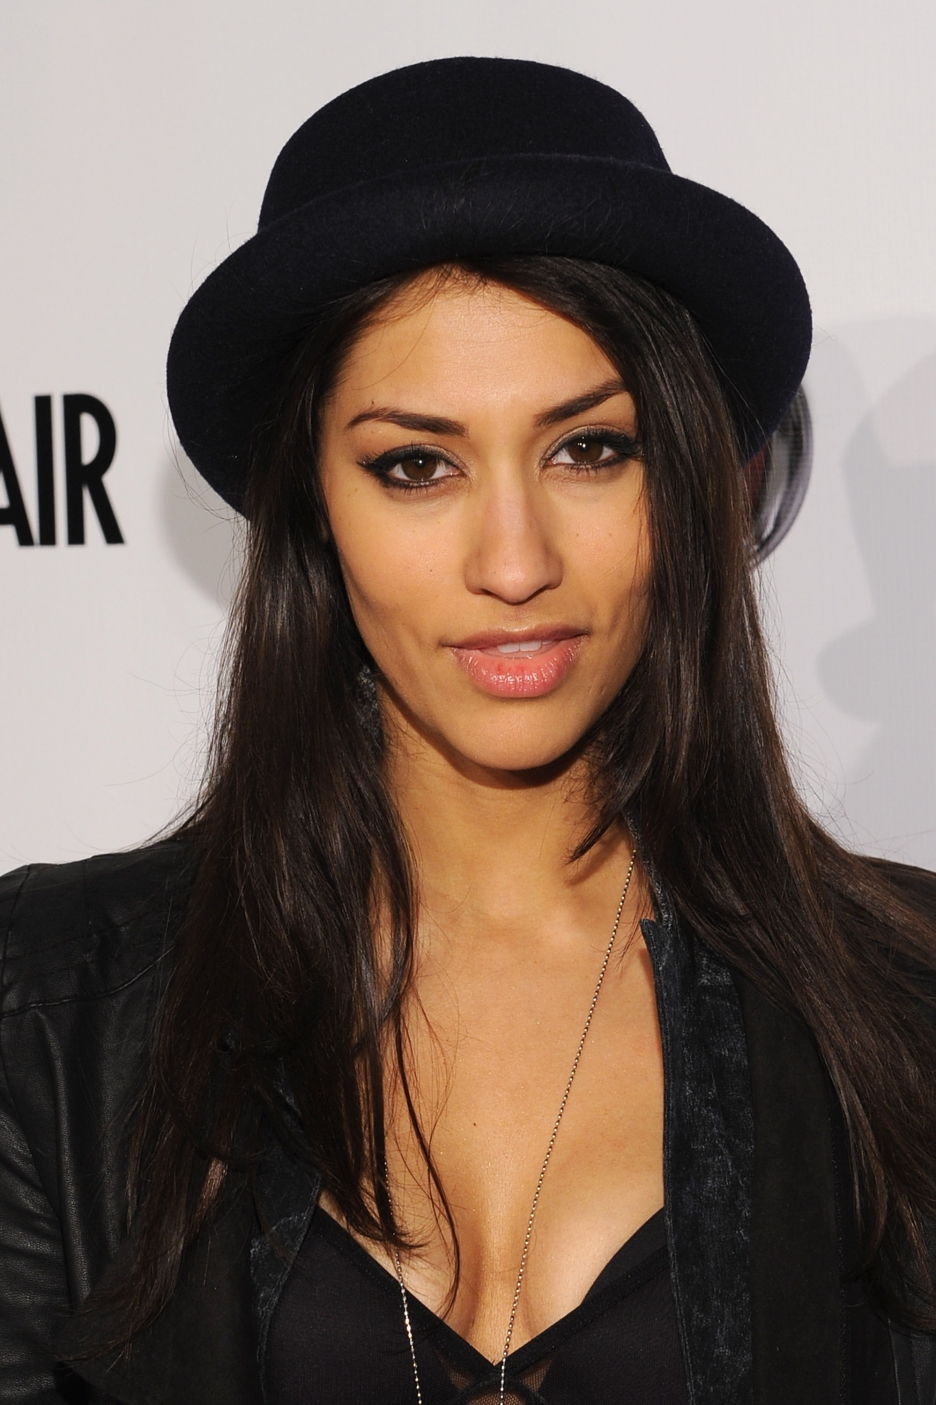 janina gavankar sisterjanina gavankar instagram, janina gavankar wikipedia, janina gavankar films, janina gavankar l word, janina gavankar interview, janina gavankar fansite, janina gavankar net worth, janina gavankar imdb, janina gavankar bellazon, janina gavankar height, janina gavankar 2016, janina gavankar sleepy hollow, janina gavankar tumblr, janina gavankar sister, janina gavankar, janina gavankar game of thrones, janina gavankar true blood, janina gavankar vampire diaries, janina gavankar twitter, janina gavankar bio